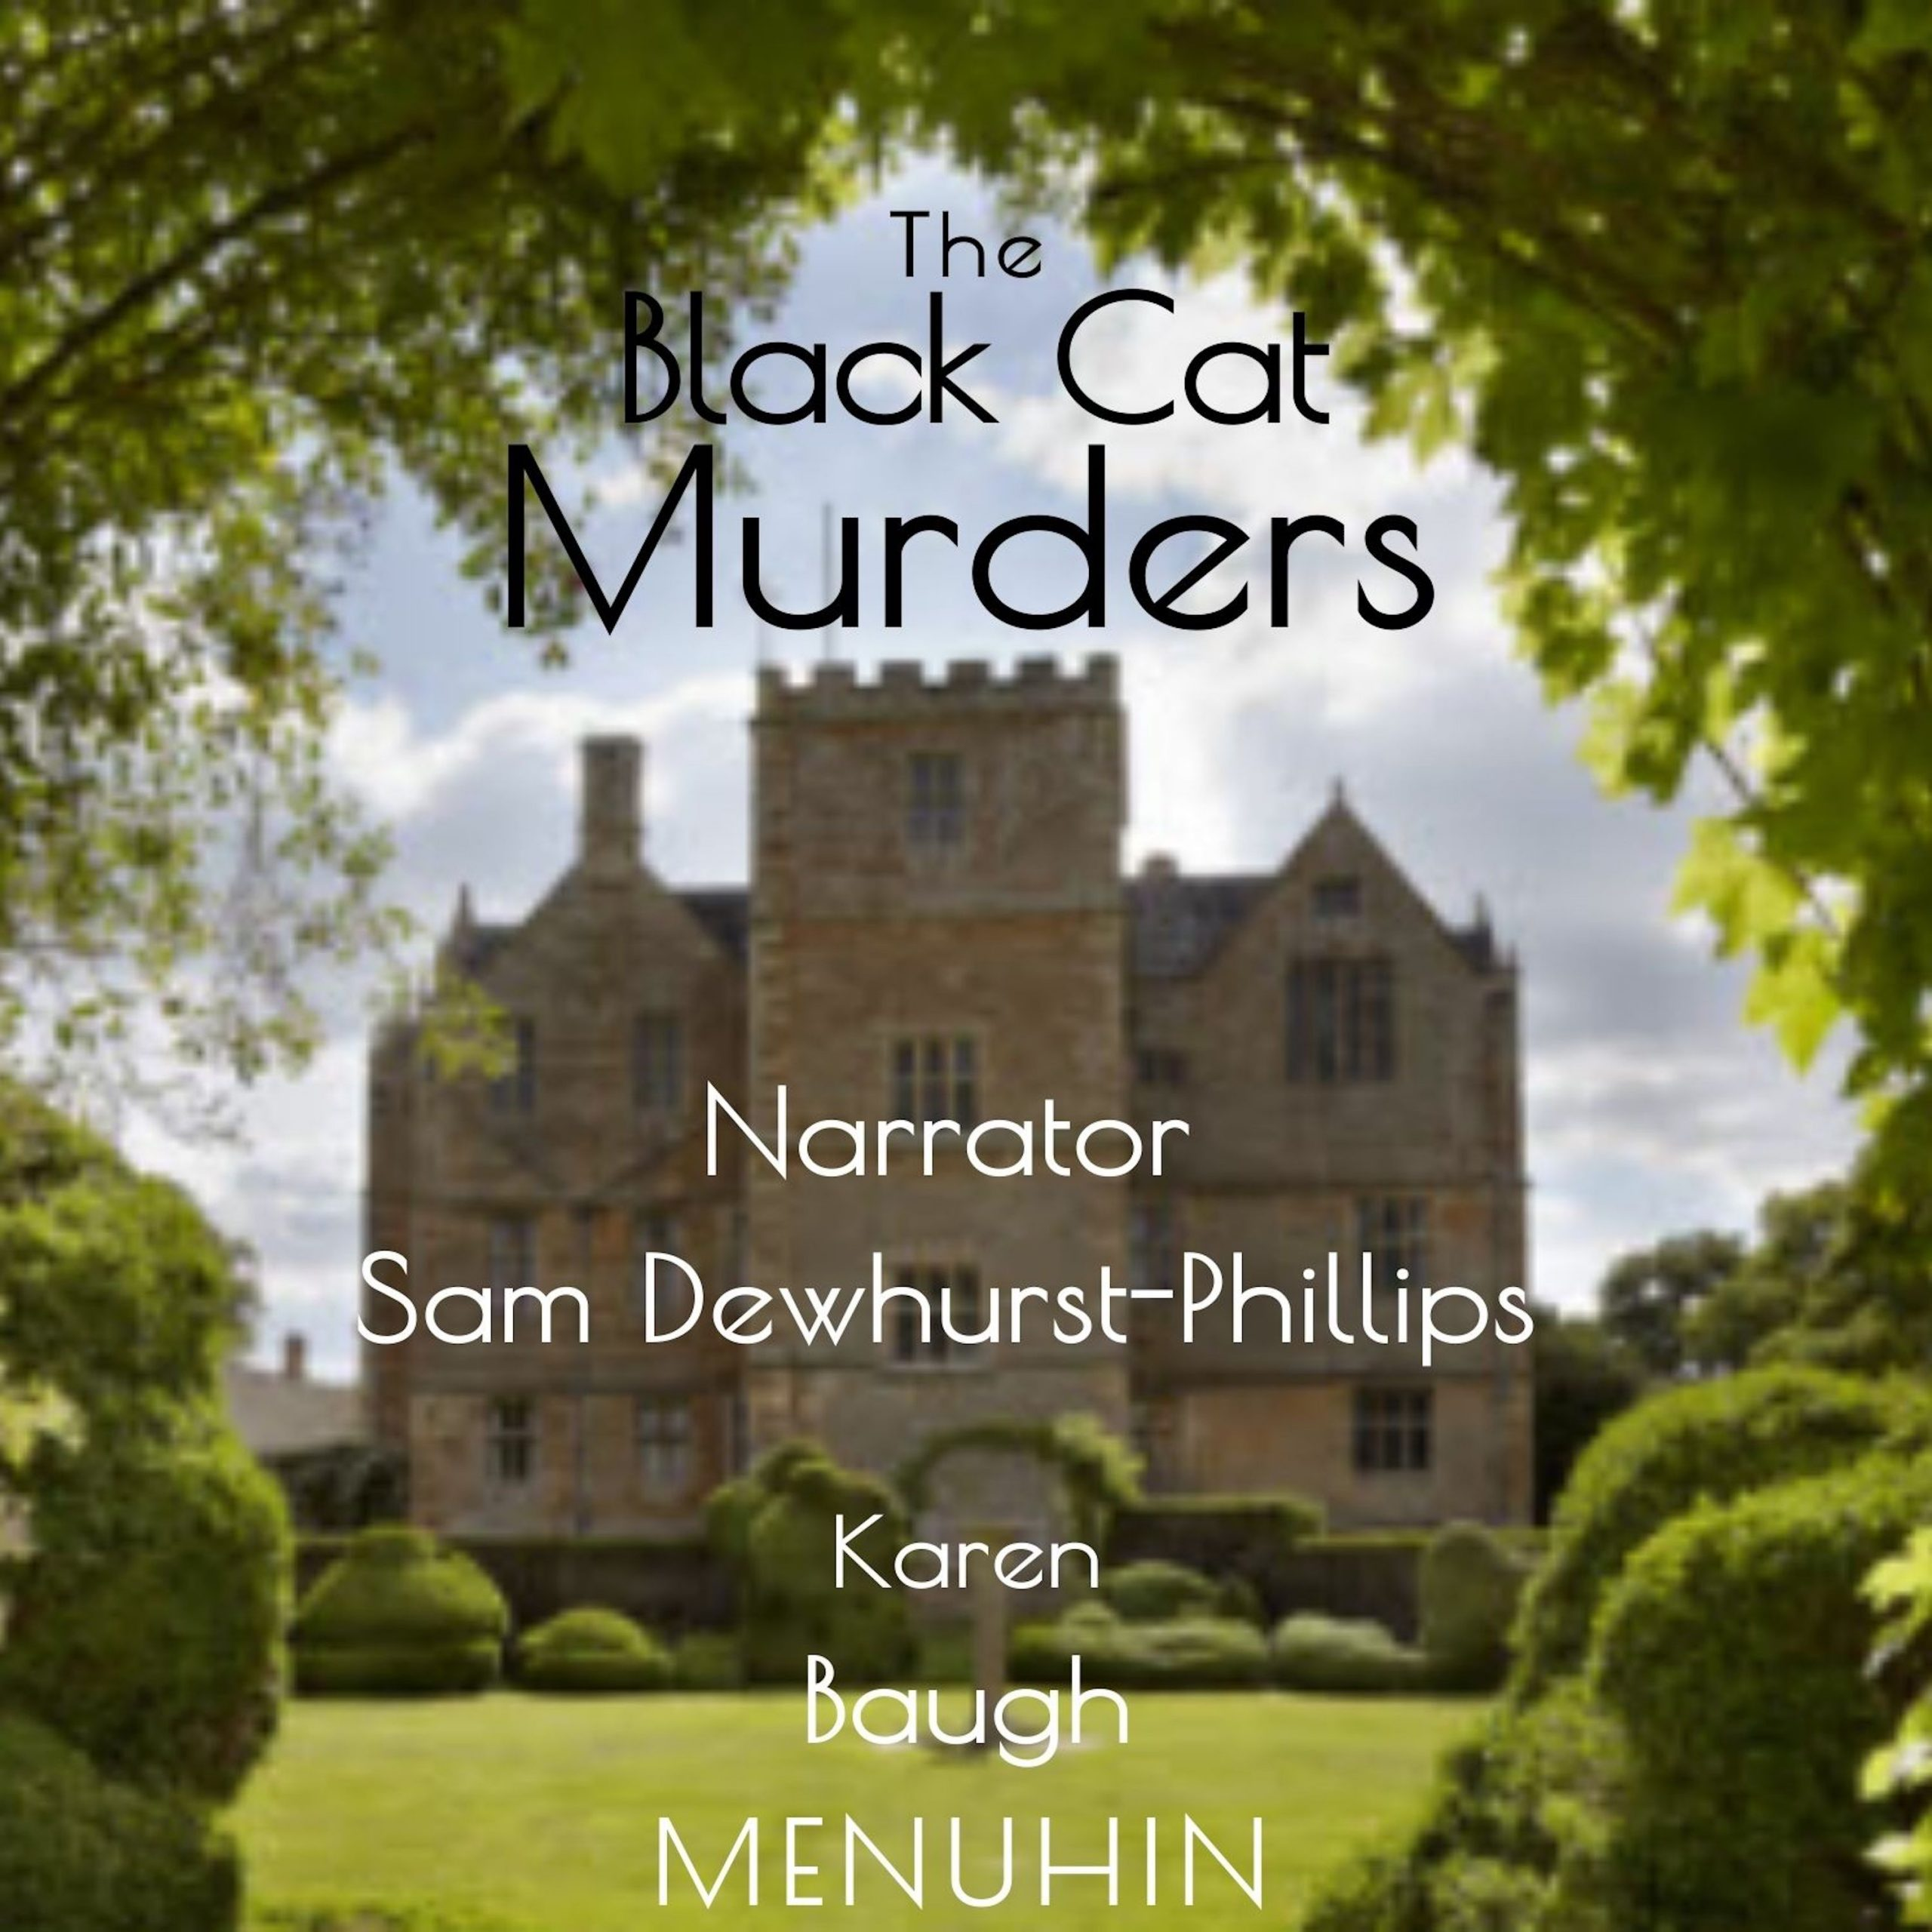 The Black Cat Murders Audiobook Cover